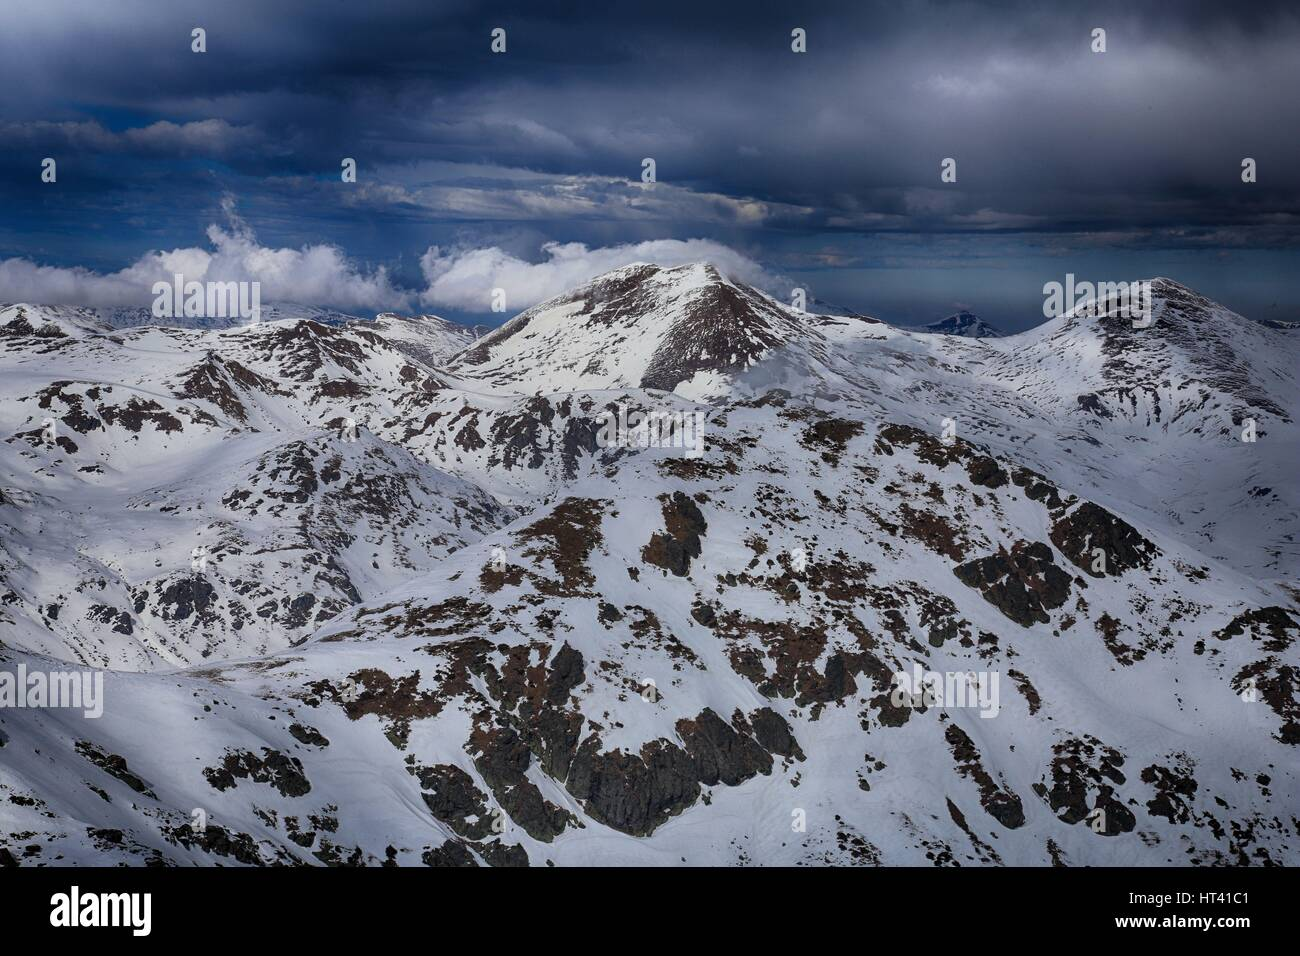 Sar / Sharr Mountains / Malet e Sharrit between Macedonia and Kosovo in winter seen from the highest peak of Kosovo - Stock Image